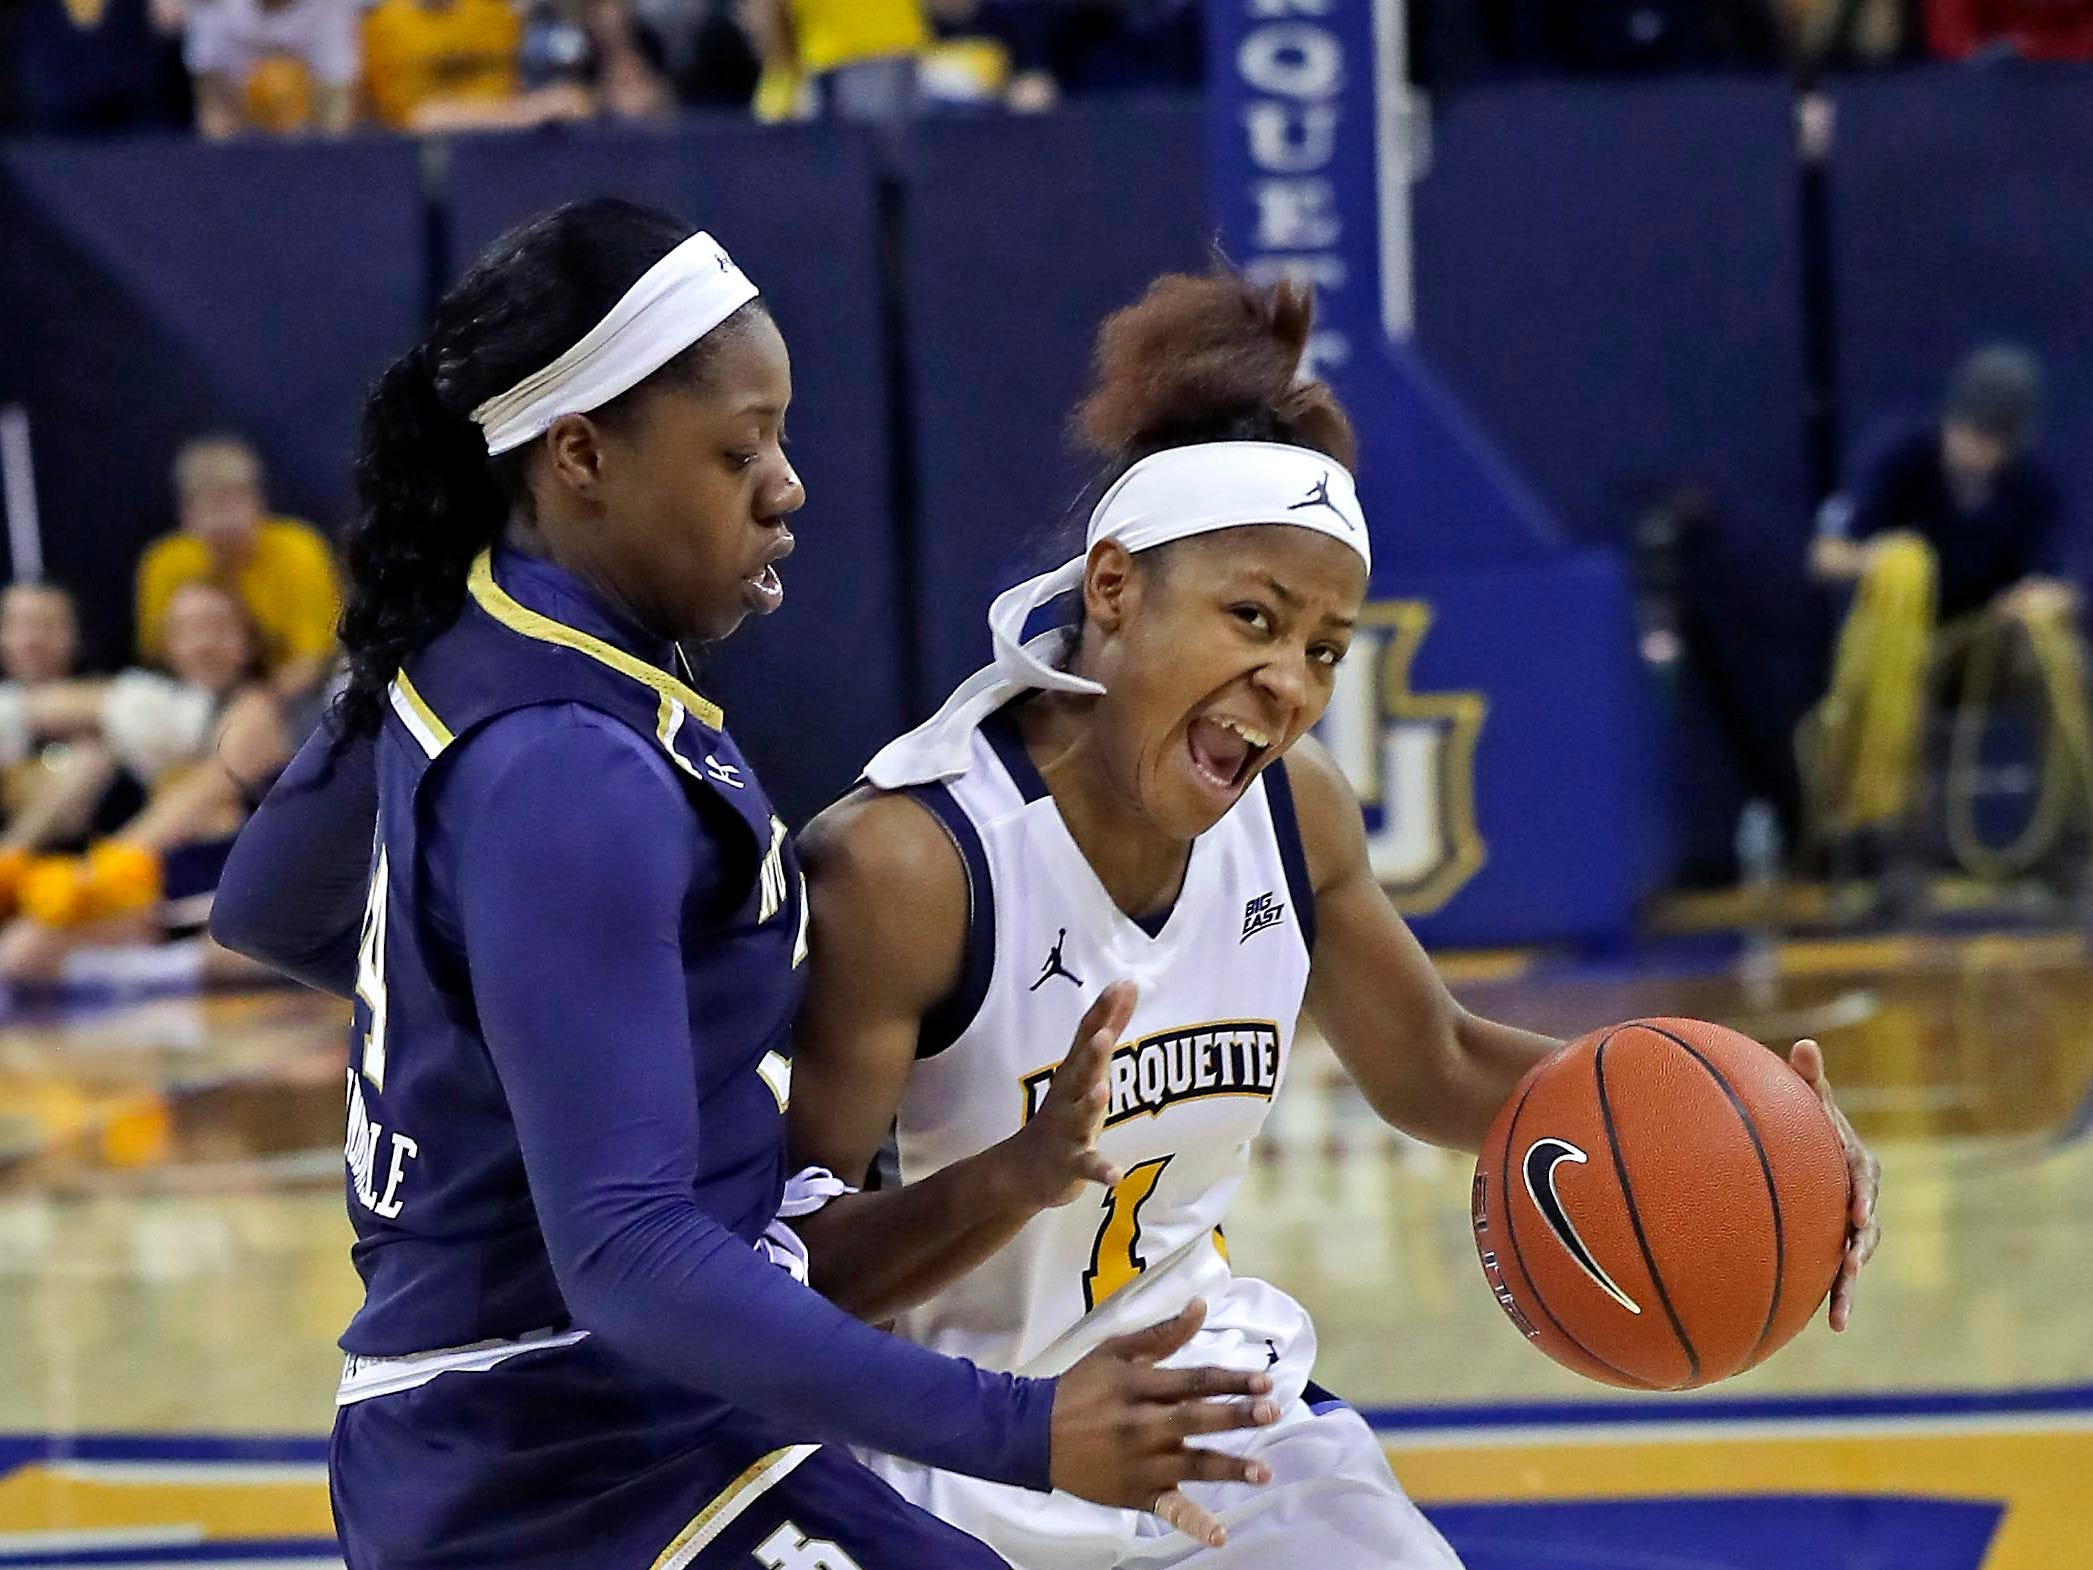 Marquette guard Danielle King  is pressured by Notre Dame guard Arike Ogunbowale.